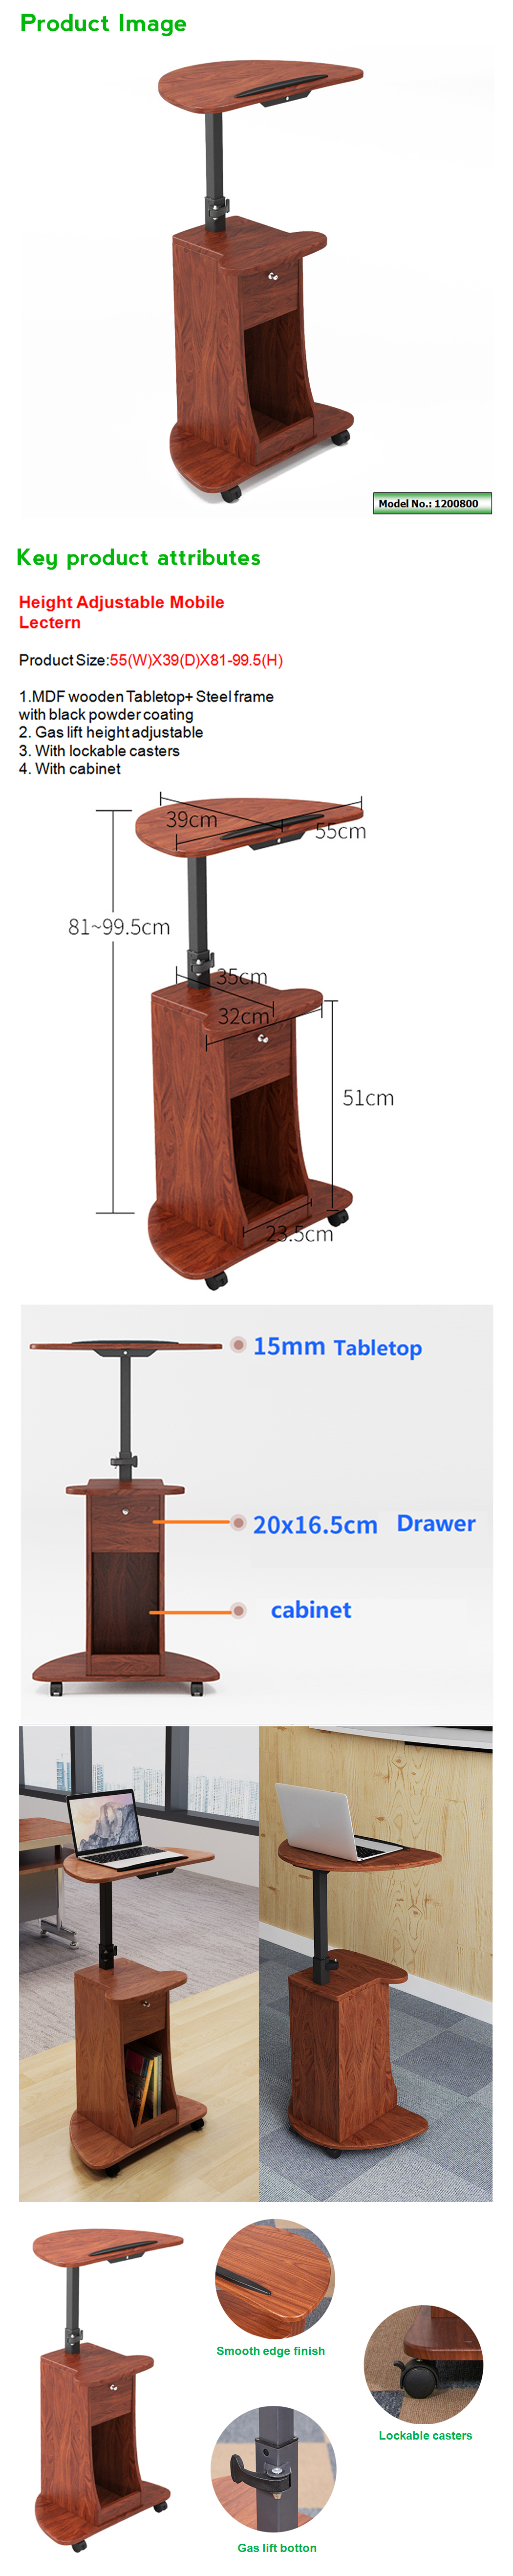 mobile height adjustable lectern